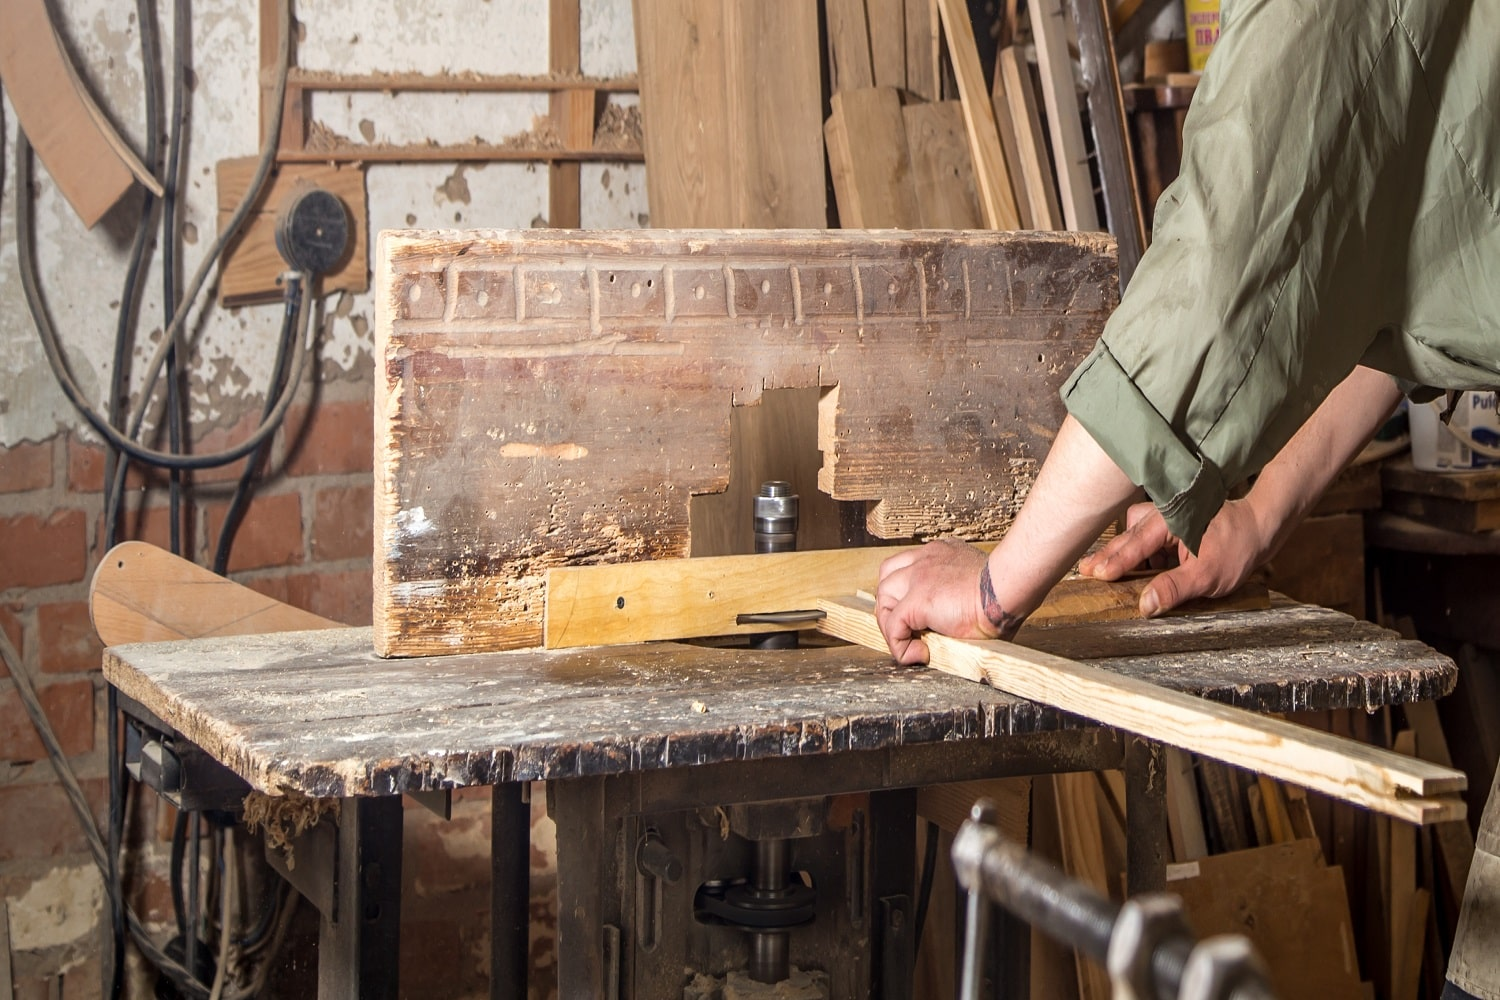 Benchtop Jointer for Woodworking 3